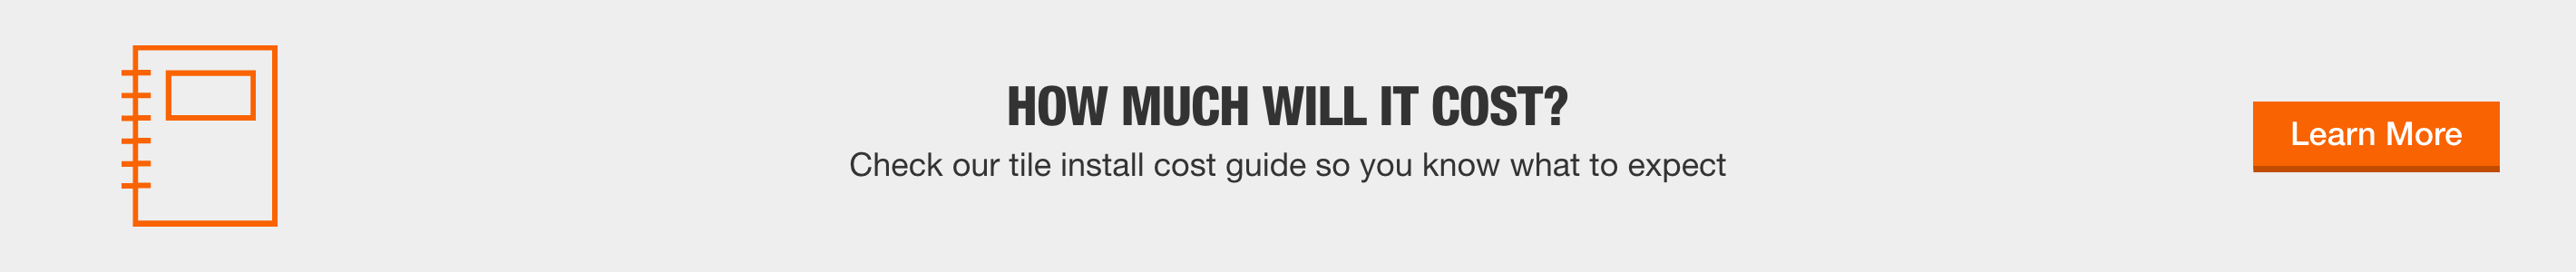 How much will it cost? Check our tile install cost guide so you know what to expect